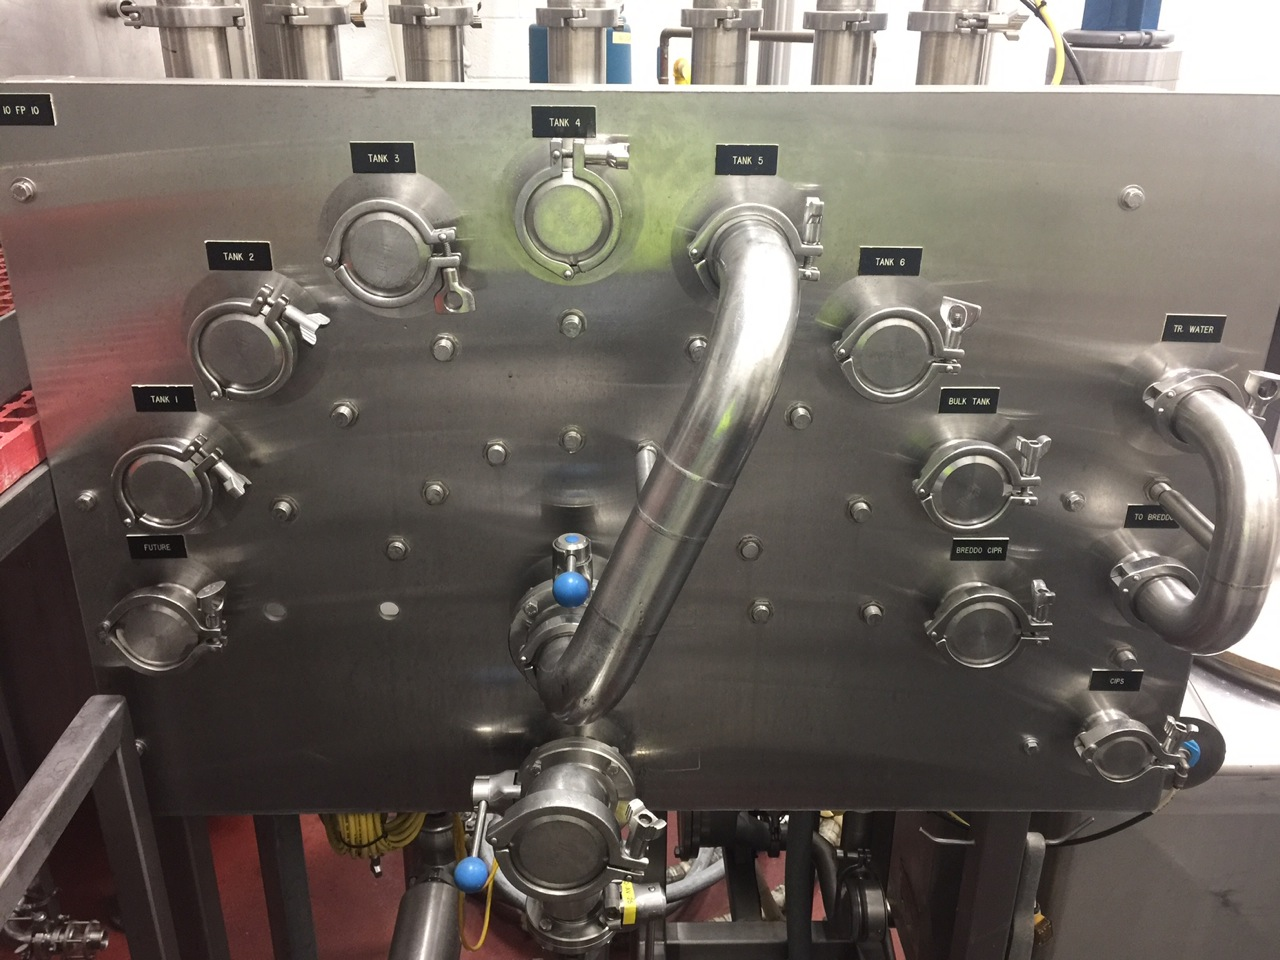 Stainless Steel CIP Manifold with GEA Valves | Rigging Price: $100